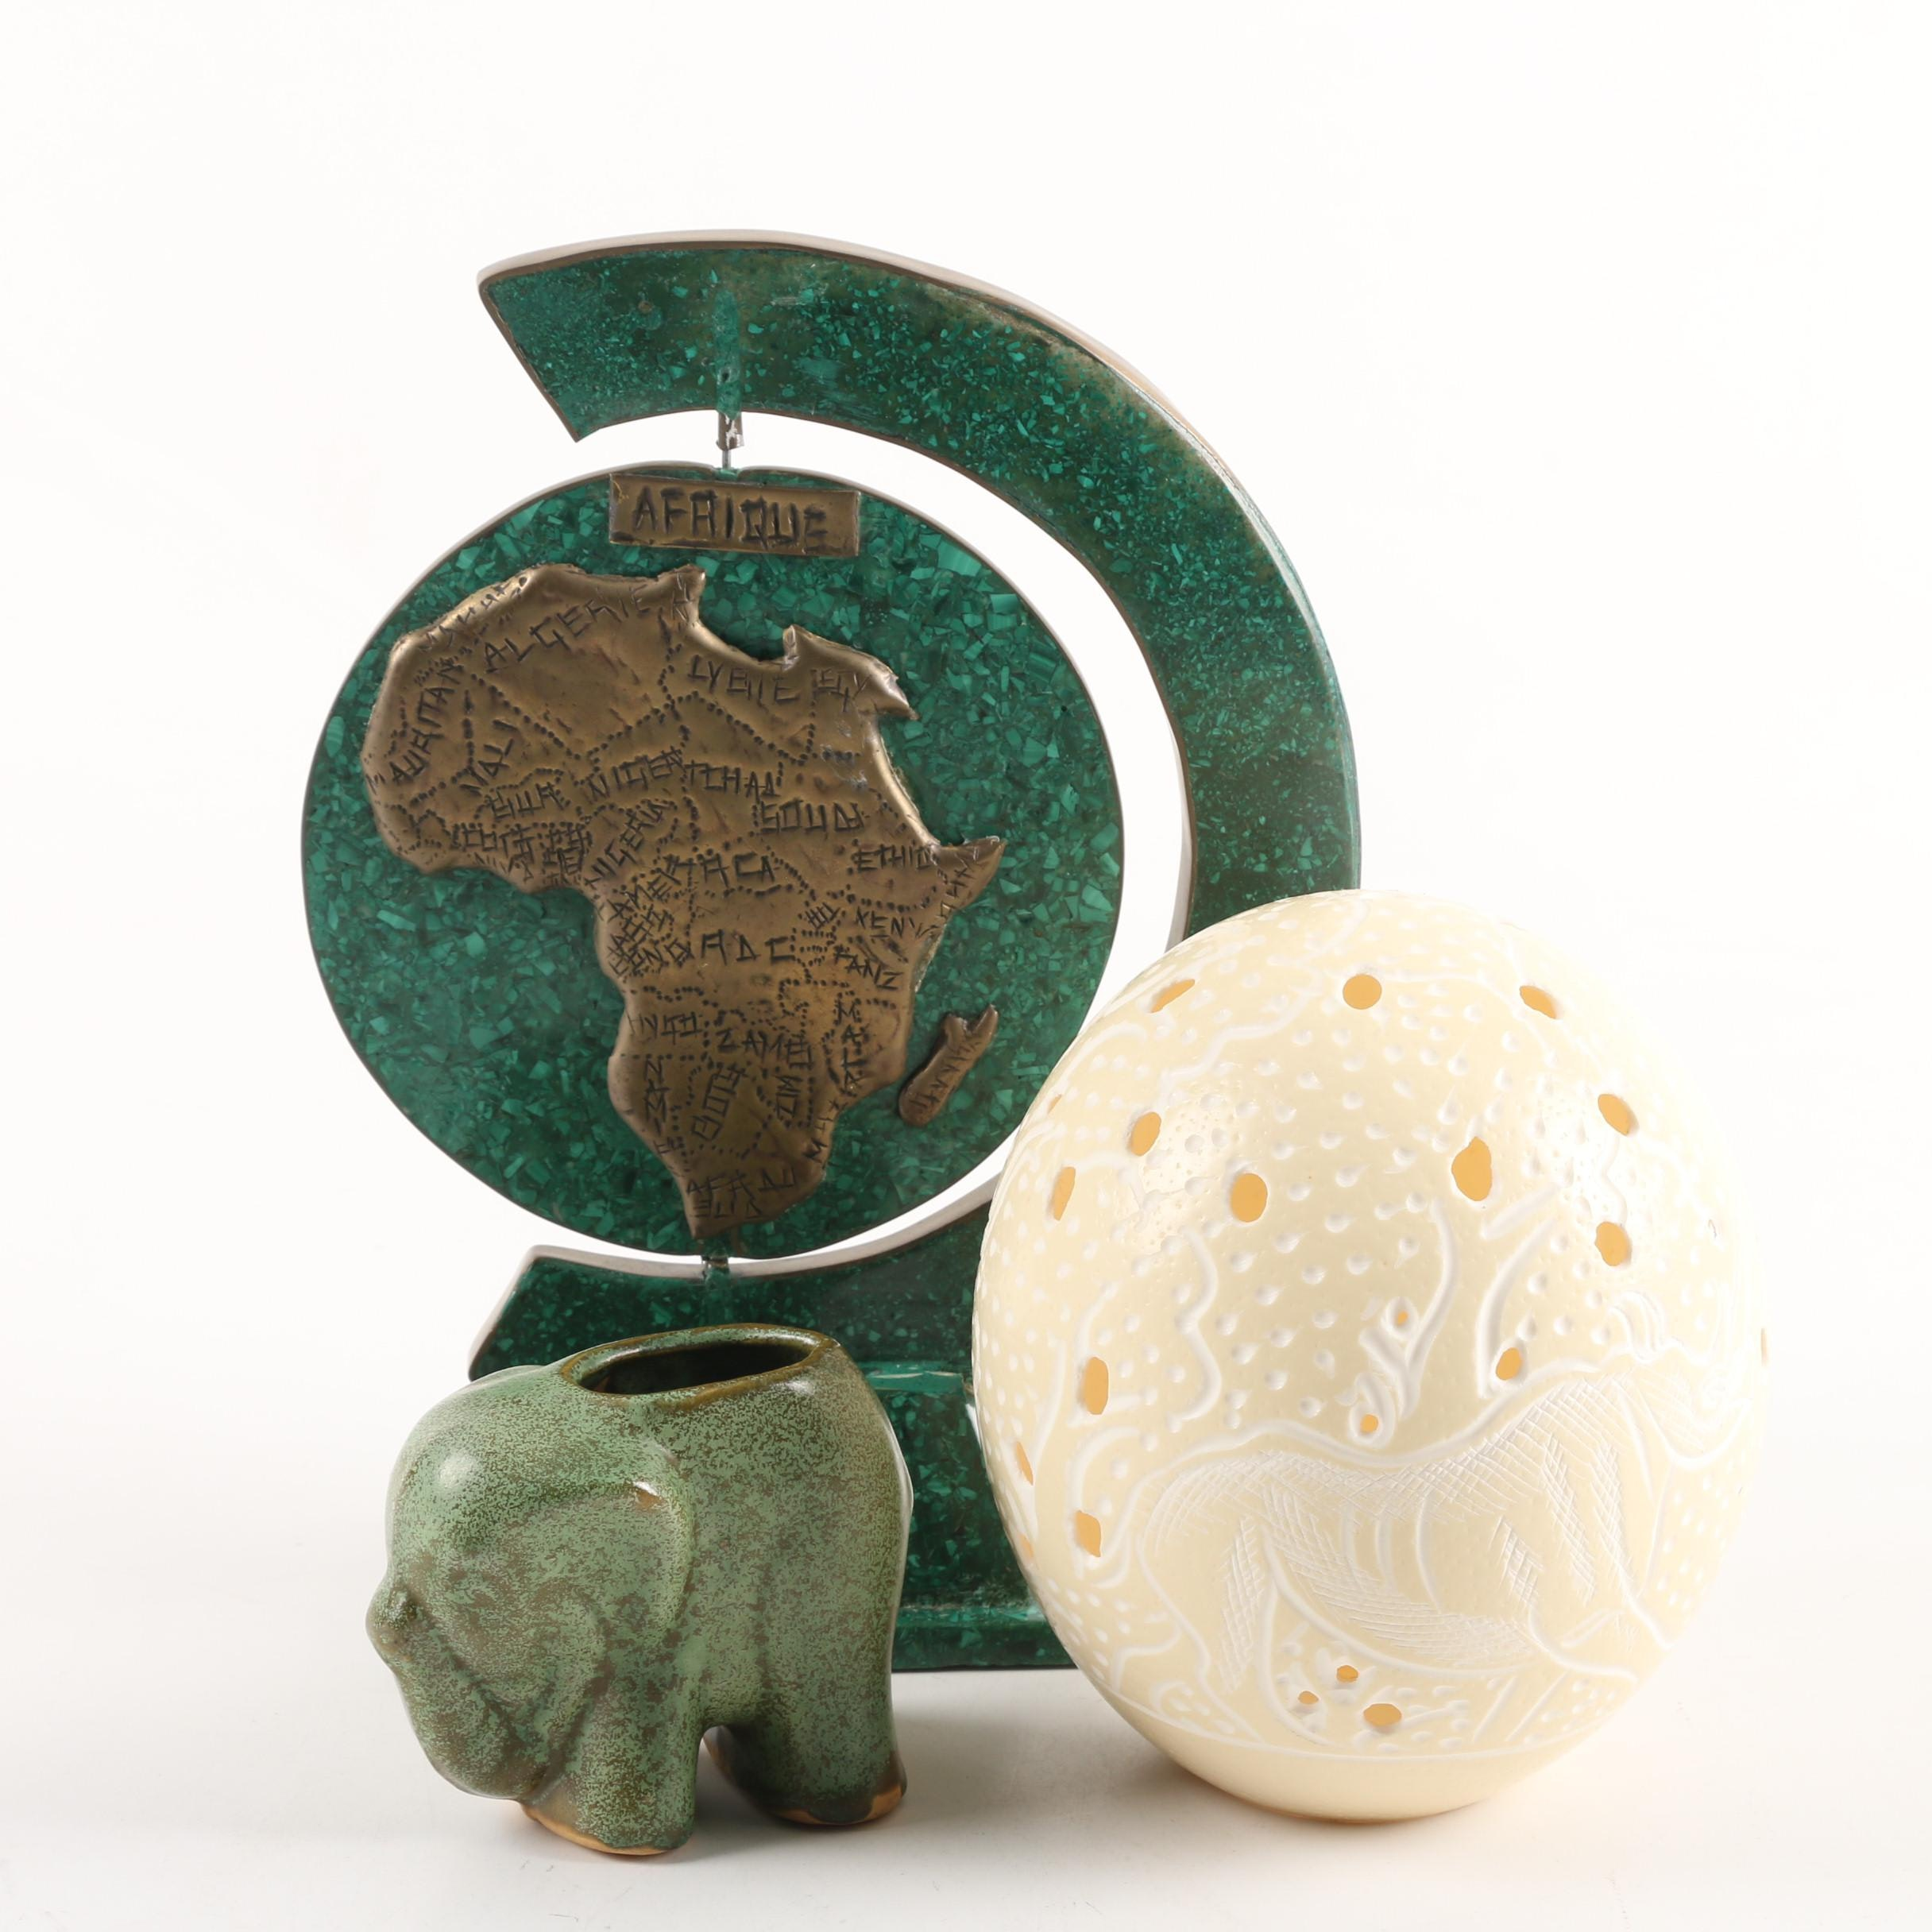 Ostrich Egg Carving, Elephant Vase and African Globe Form Sculpture